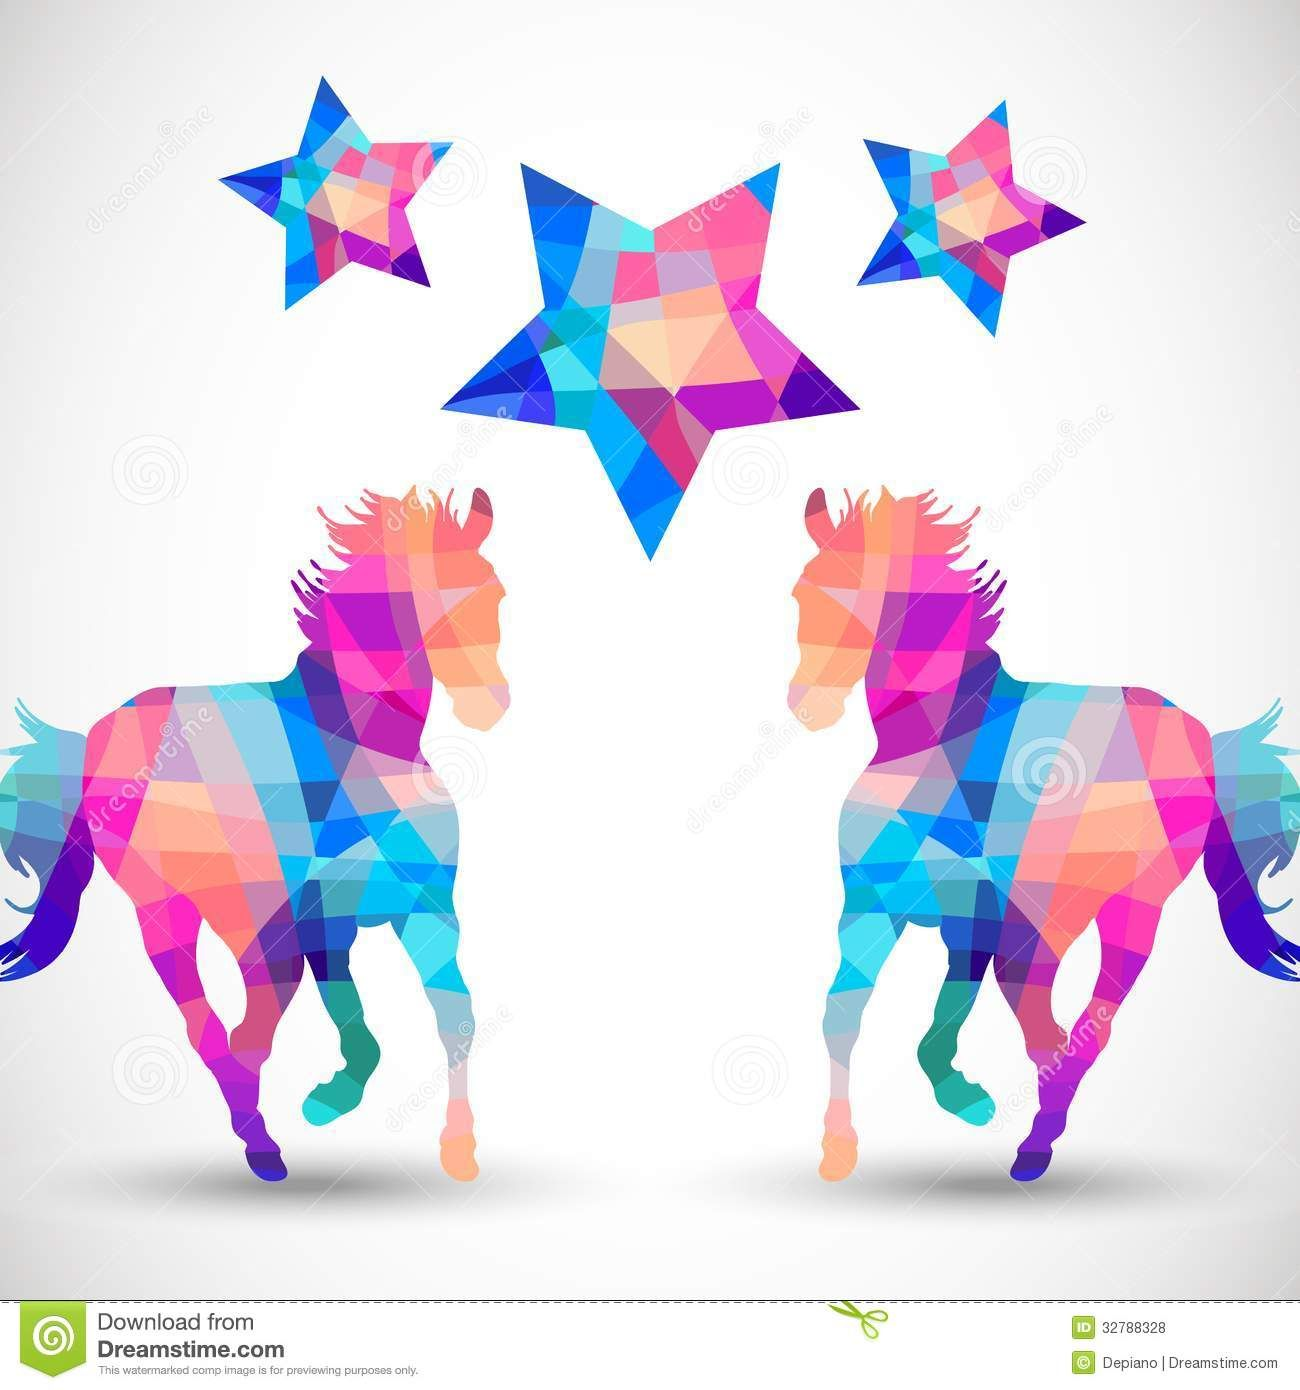 abstract-horse-geometric-shapes-star-file-eps-format-32788328.jpg (1300×1390)